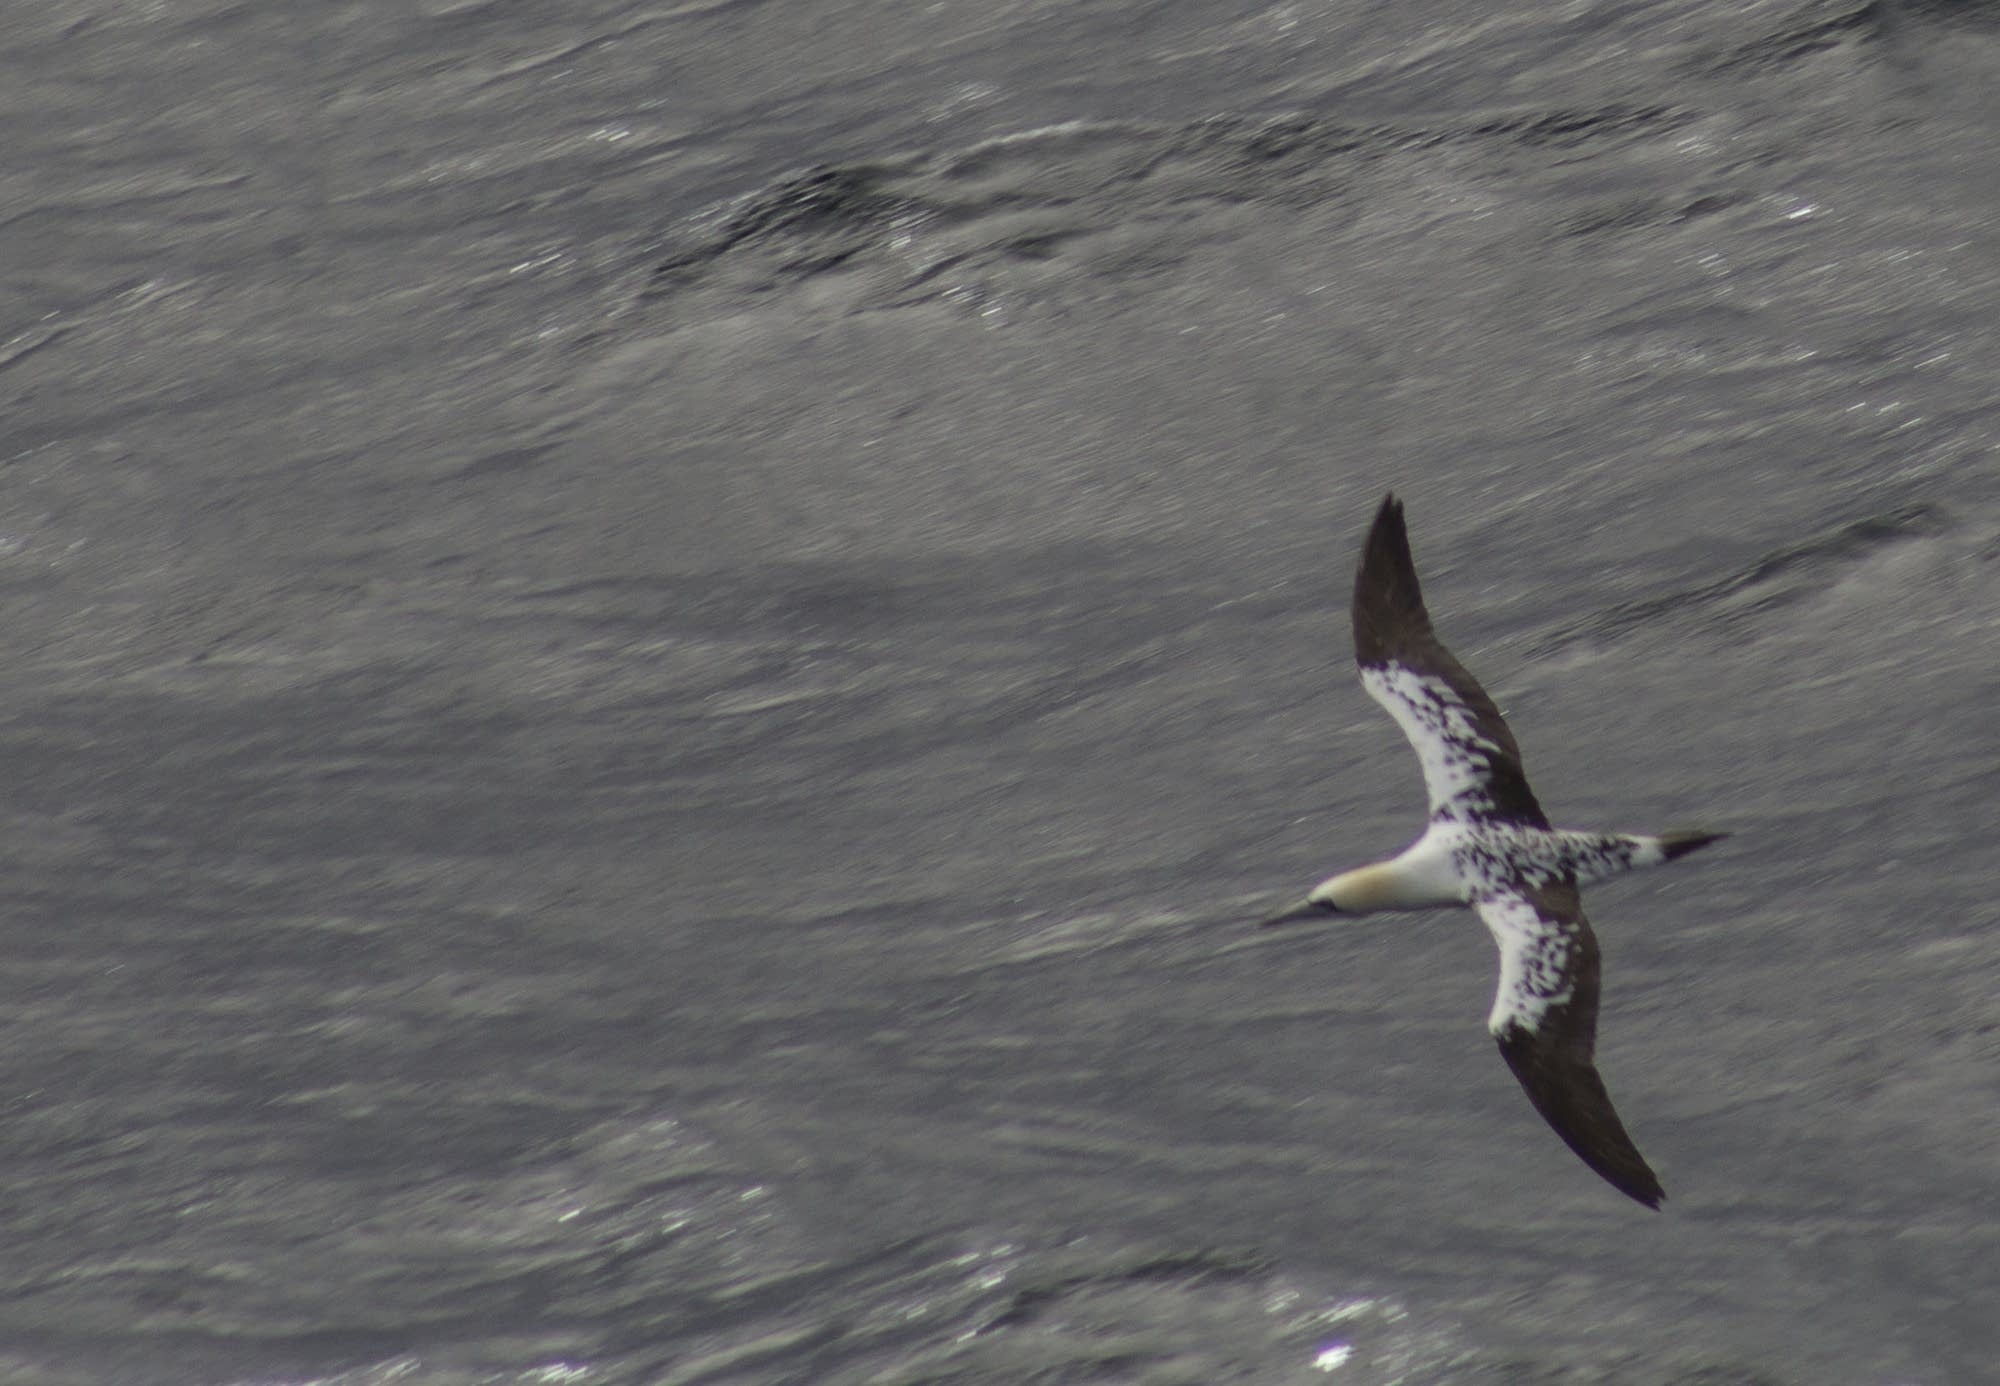 North Sea - 01 - bird from above